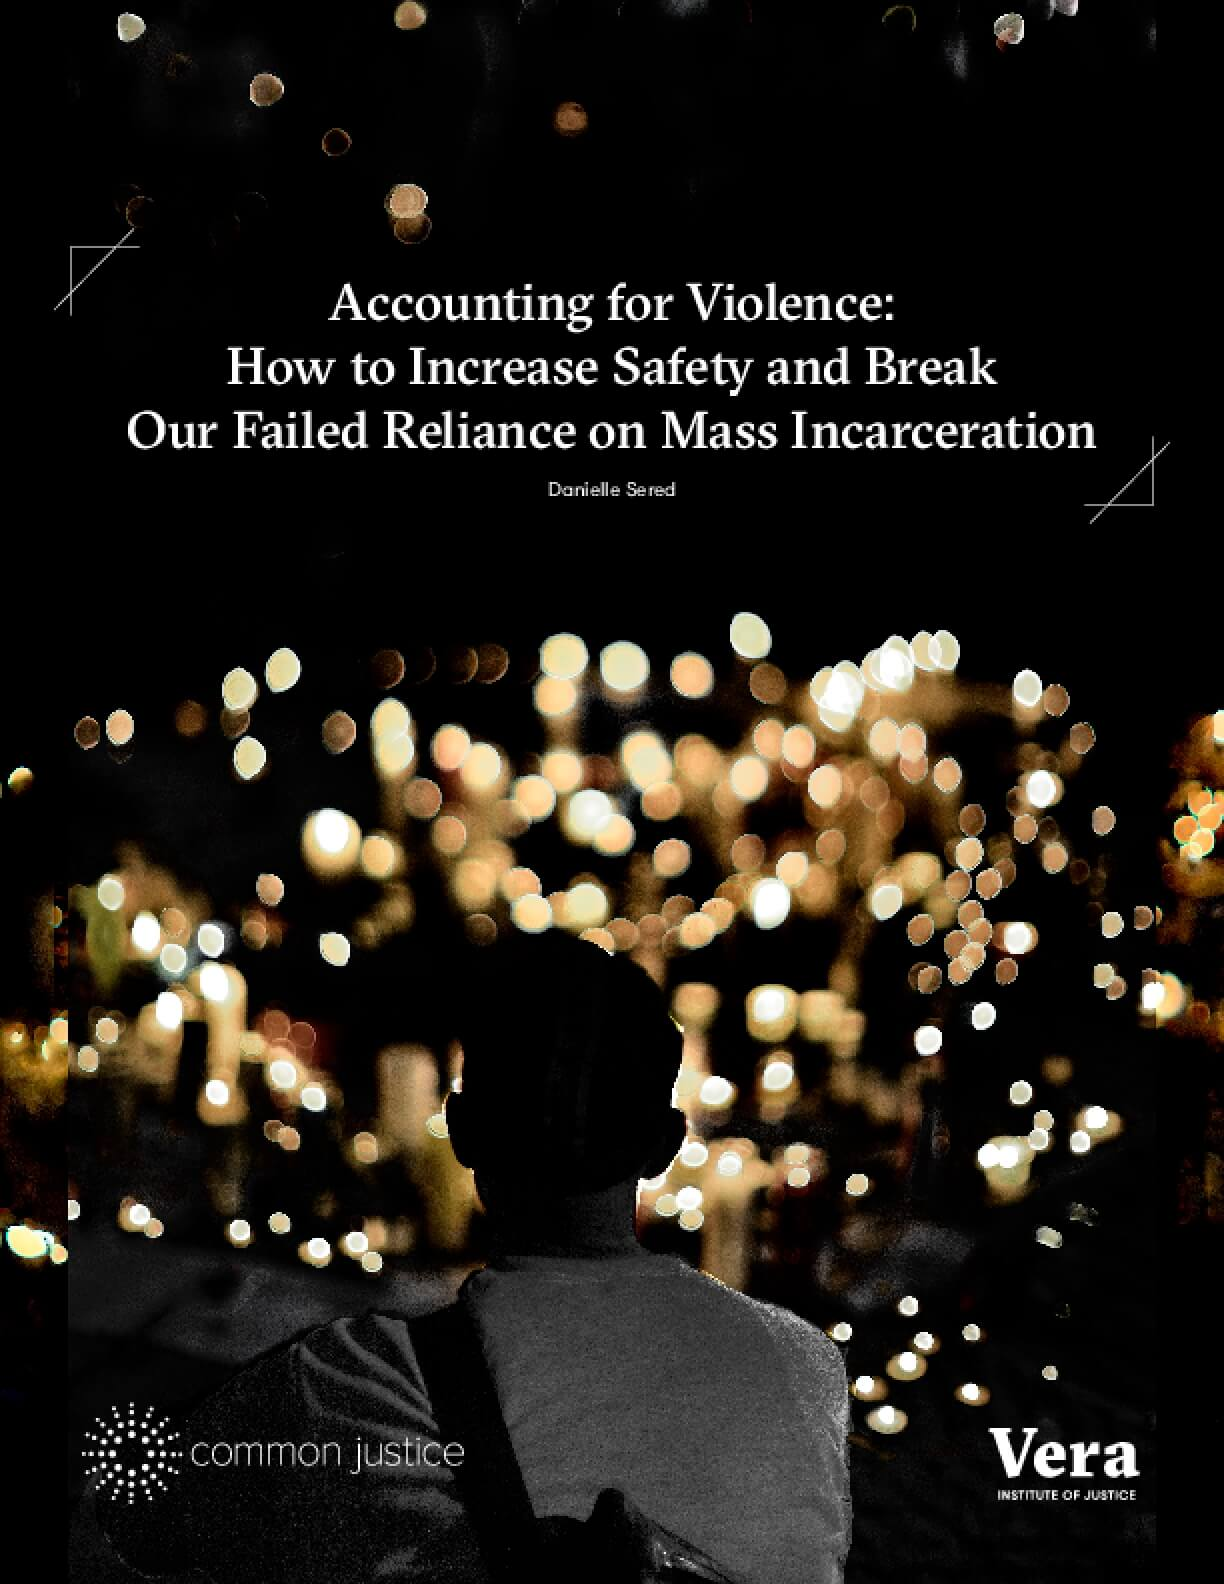 Accounting for Violence: How to Increase Safety and Break Our Failed Reliance on Mass Incarceration